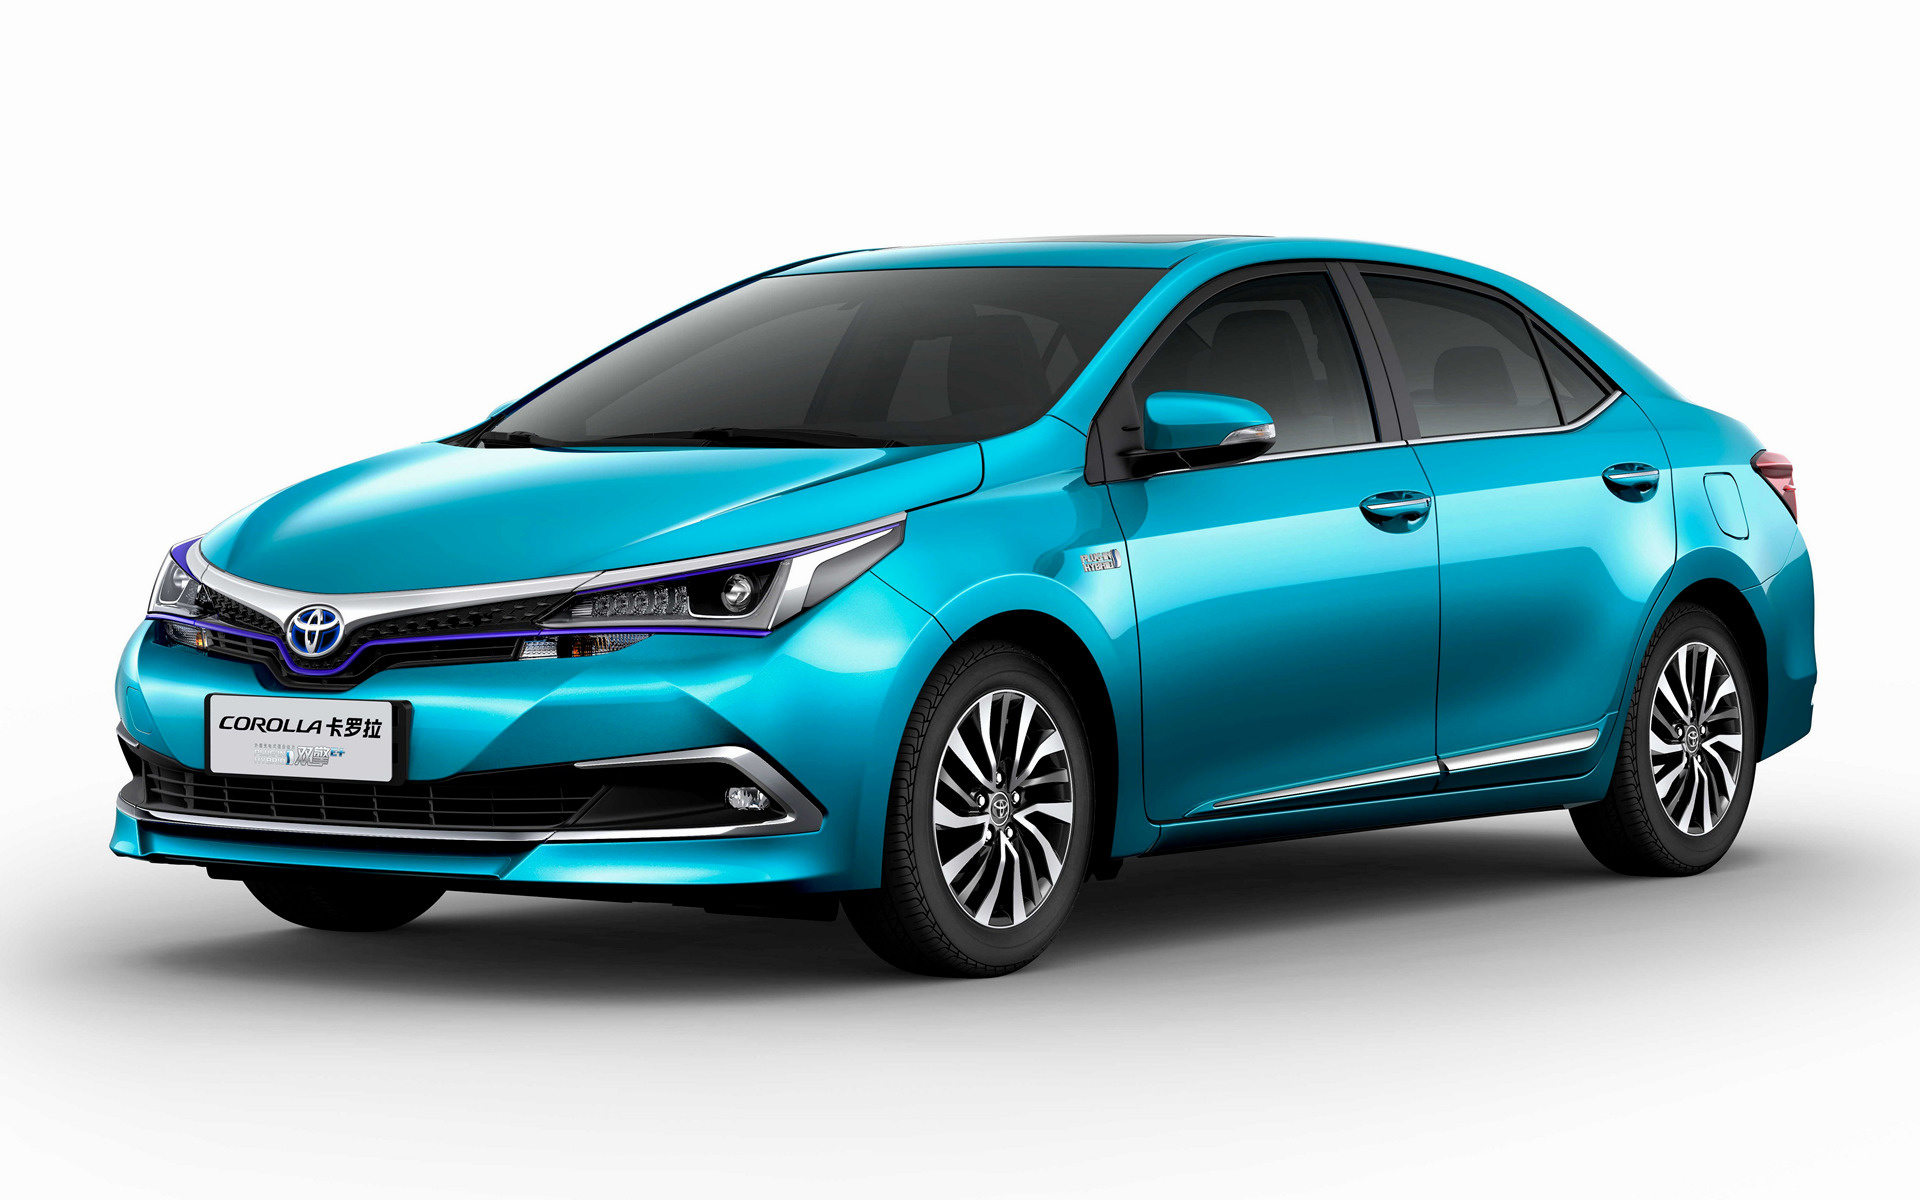 2018 Toyota Corolla Plug-in Hybrid (CN) - Wallpapers and HD Images | Car Pixel